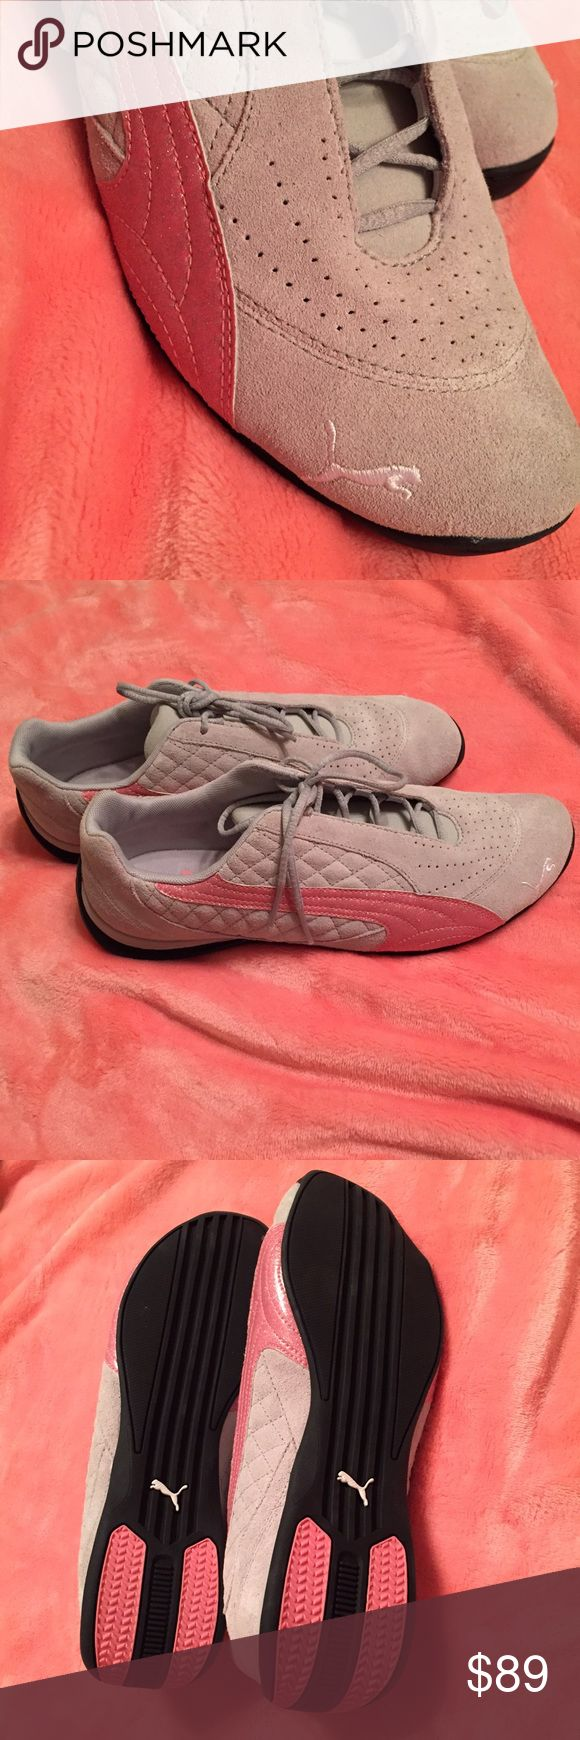 Brand New - Puma Ladies Shoes Authentic- These tennis shoes are brand new., still in original box. Silver and Pink color Puma Shoes Athletic Shoes